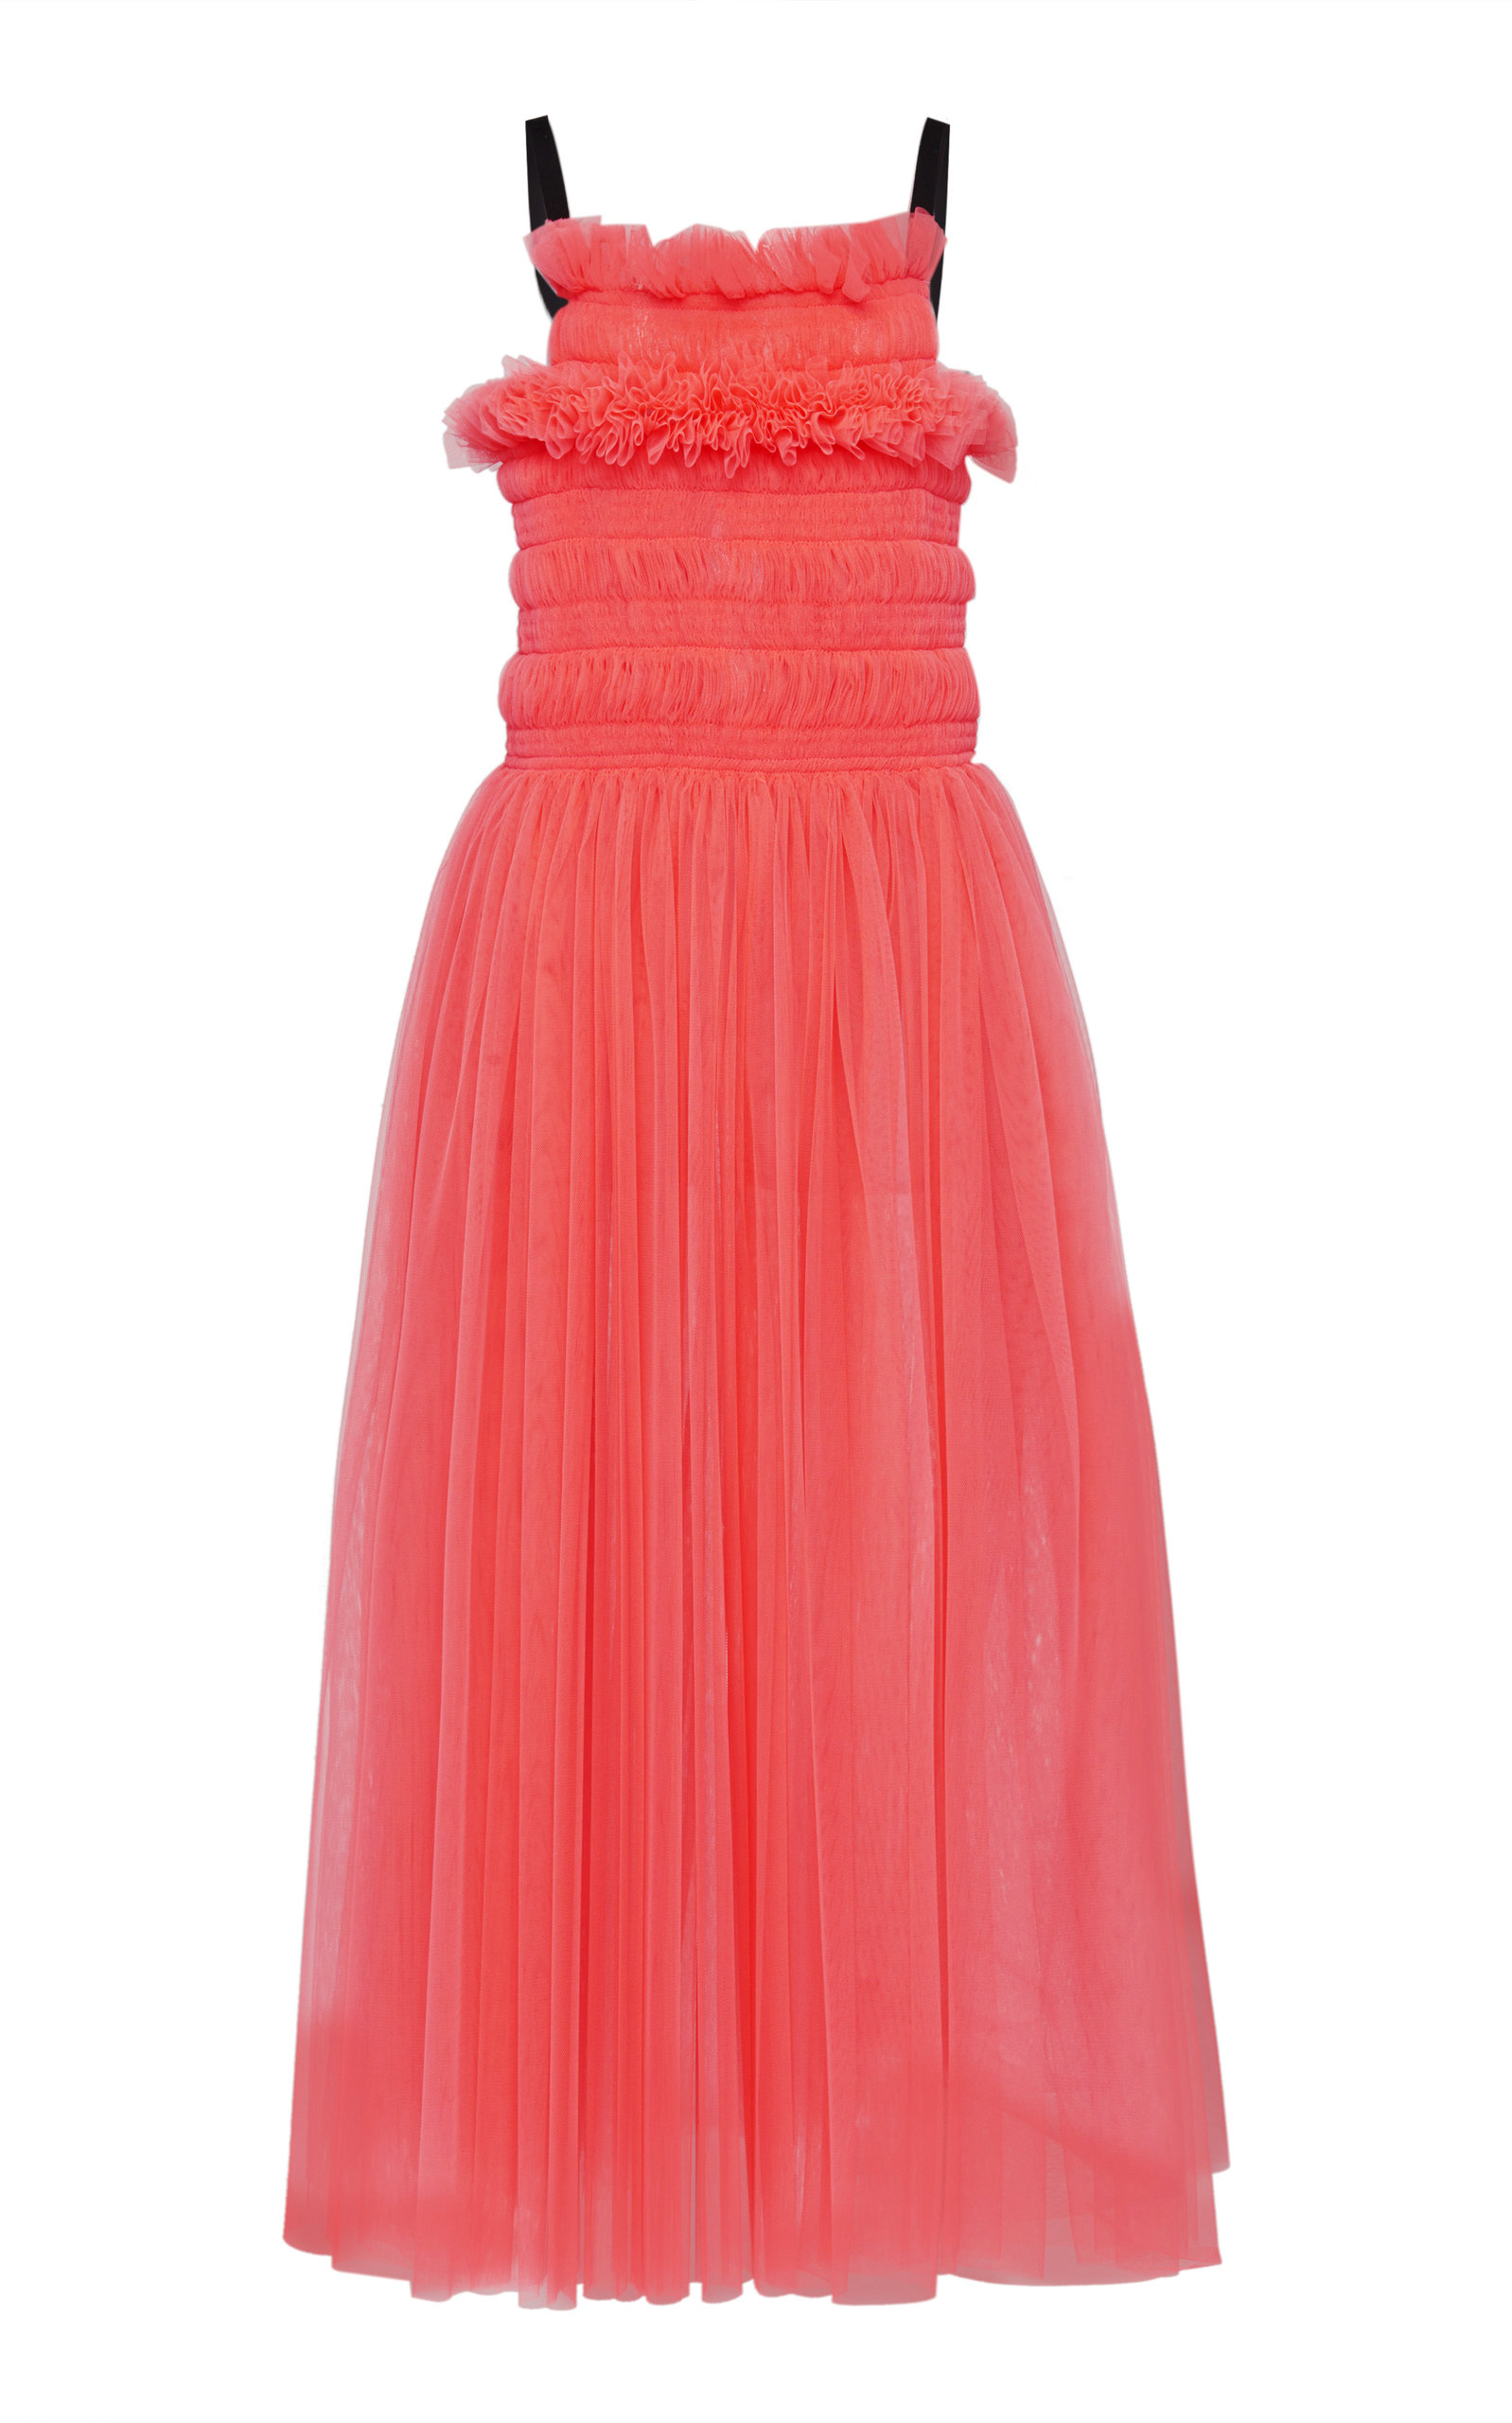 Buy Molly Goddard Shelly Tie-Back Smocked Tulle Midi Dress online, shop Molly Goddard at the best price